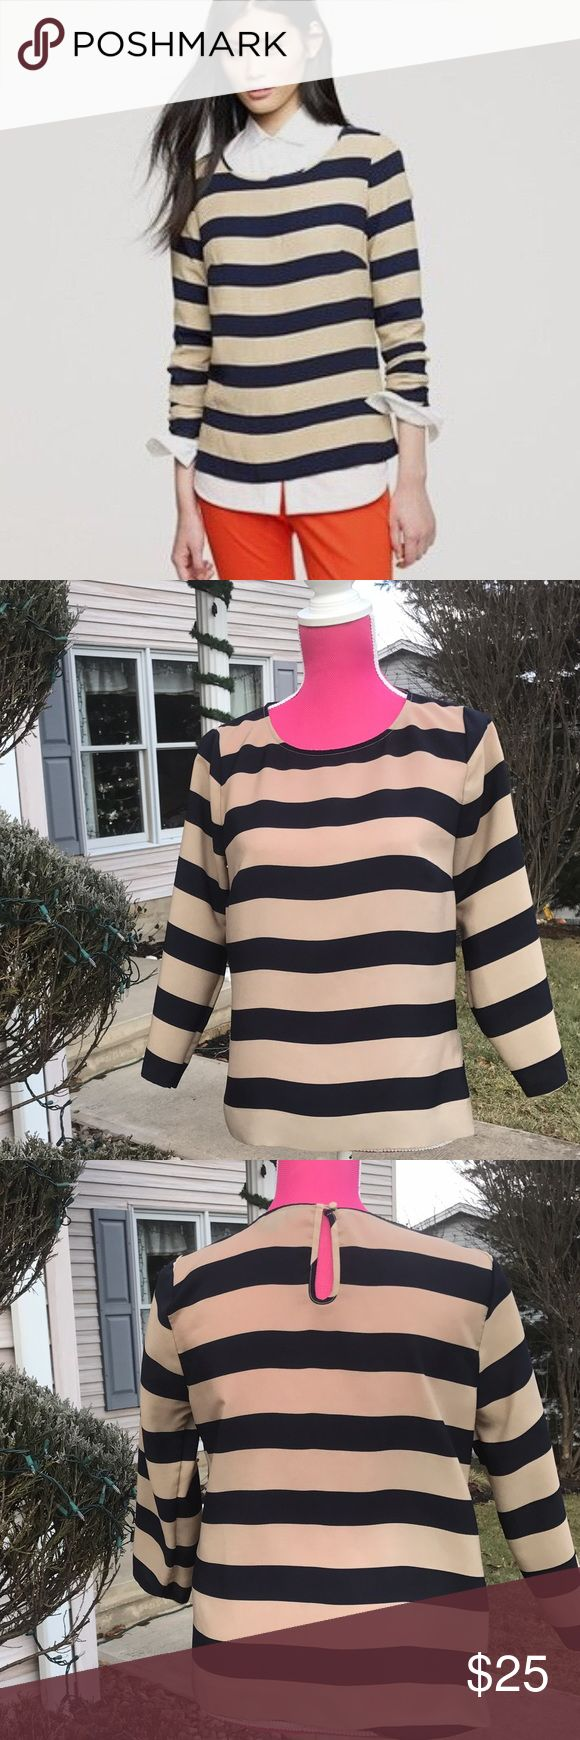 ⚓️J. CREW⚓️ nautical navy and Beige striped blouse Very pretty 100% polyester material J. Crew blouse. Navy and Beige/tan stripes with a keyhole and button at back of neck. No signs of wear. Size small. J. Crew Tops Blouses